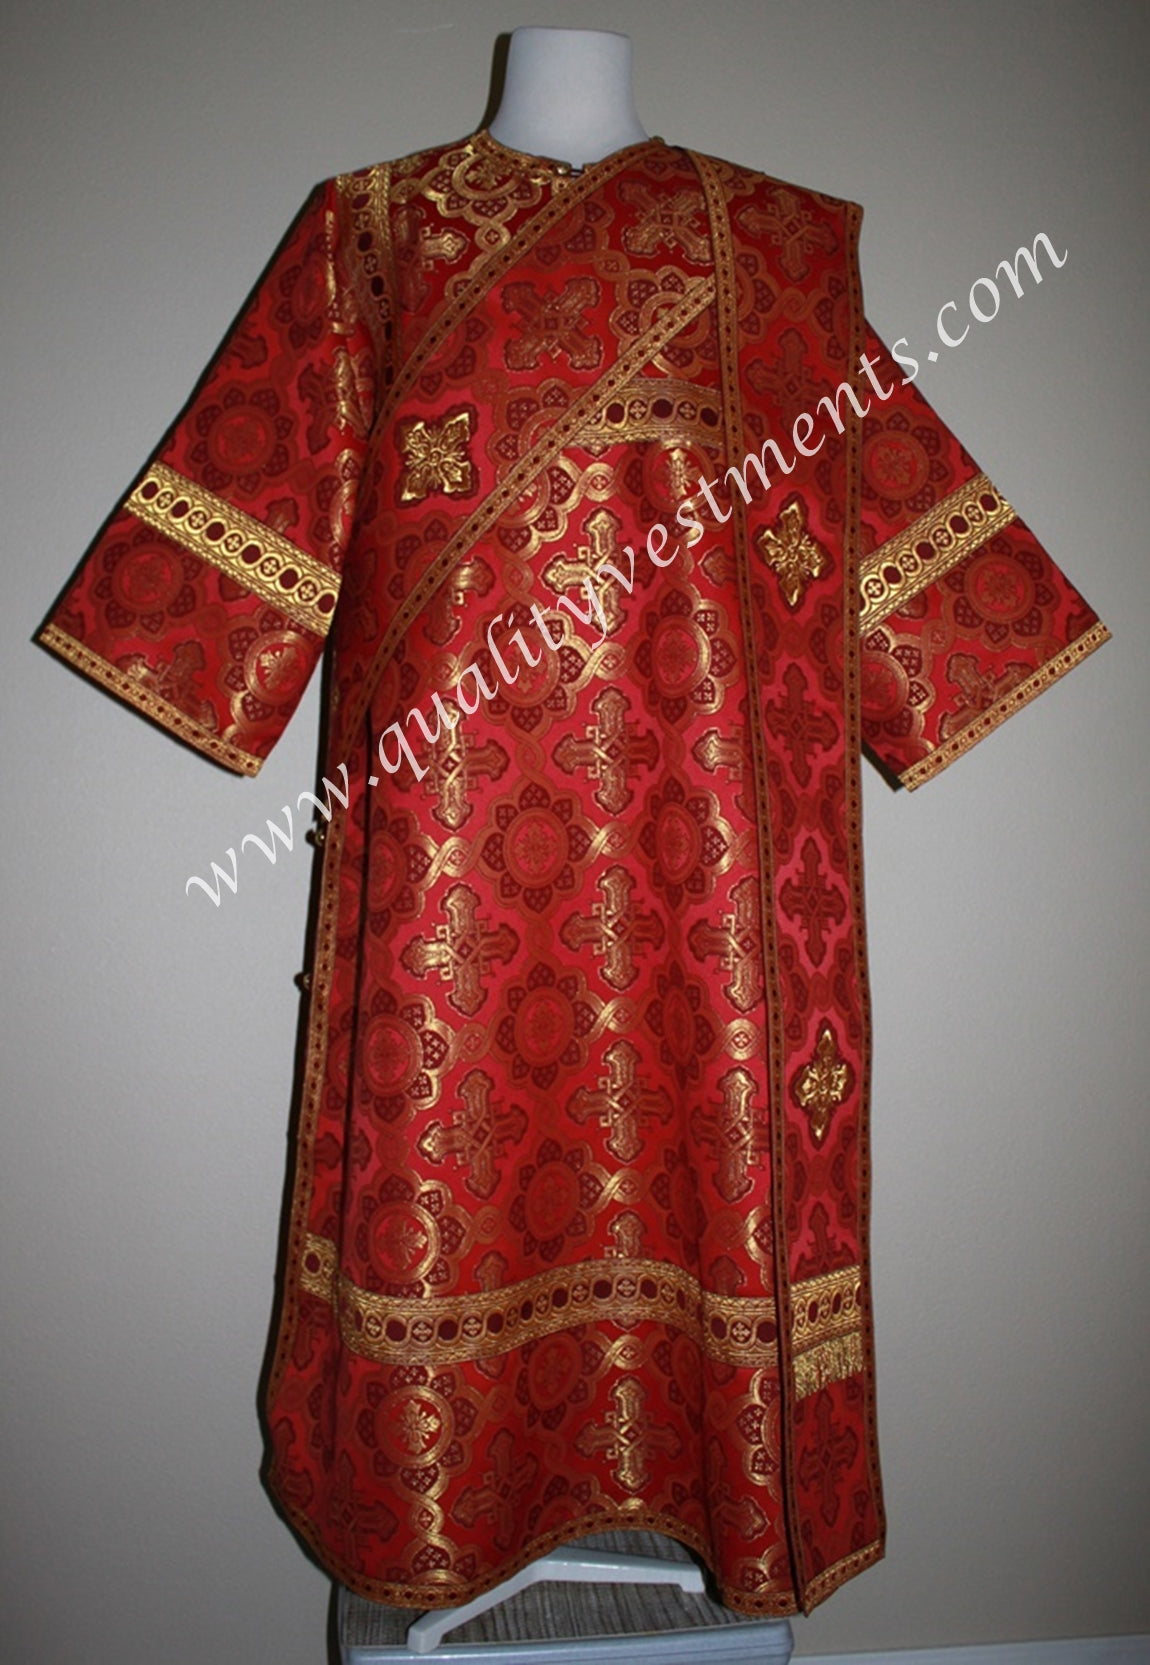 Proto Deacon Byzantine Orthodox Vestment  Metallic Brocade Red and Gold